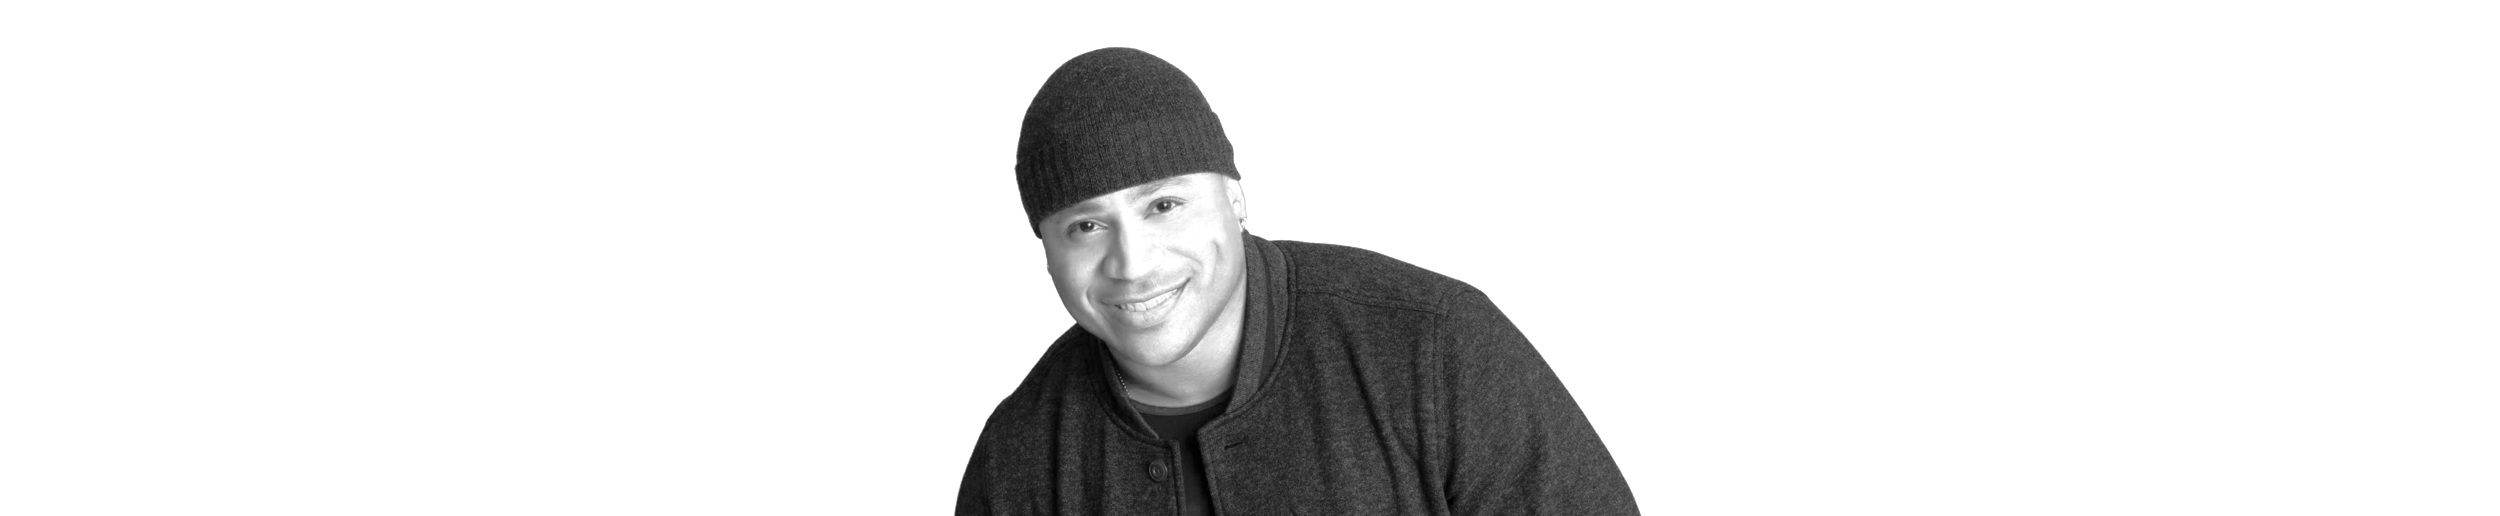 LL COOL J - EPISODE PREMIERES 6/24 at 6:00pm PST